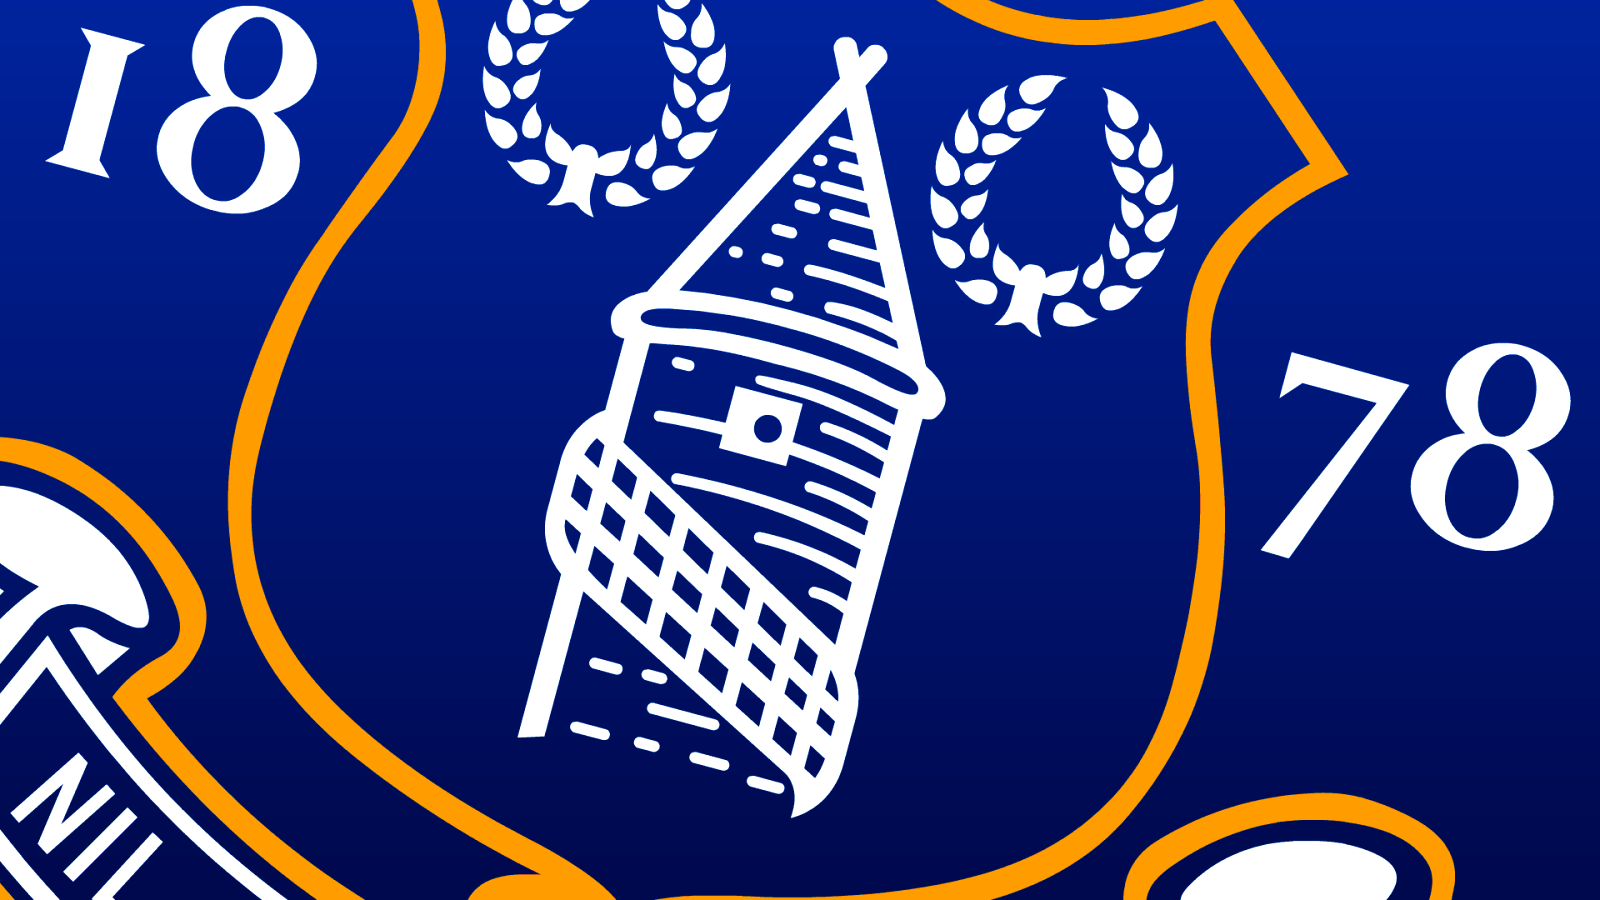 Were Everton FC Right to Rebrand Twice? | Canny Creative